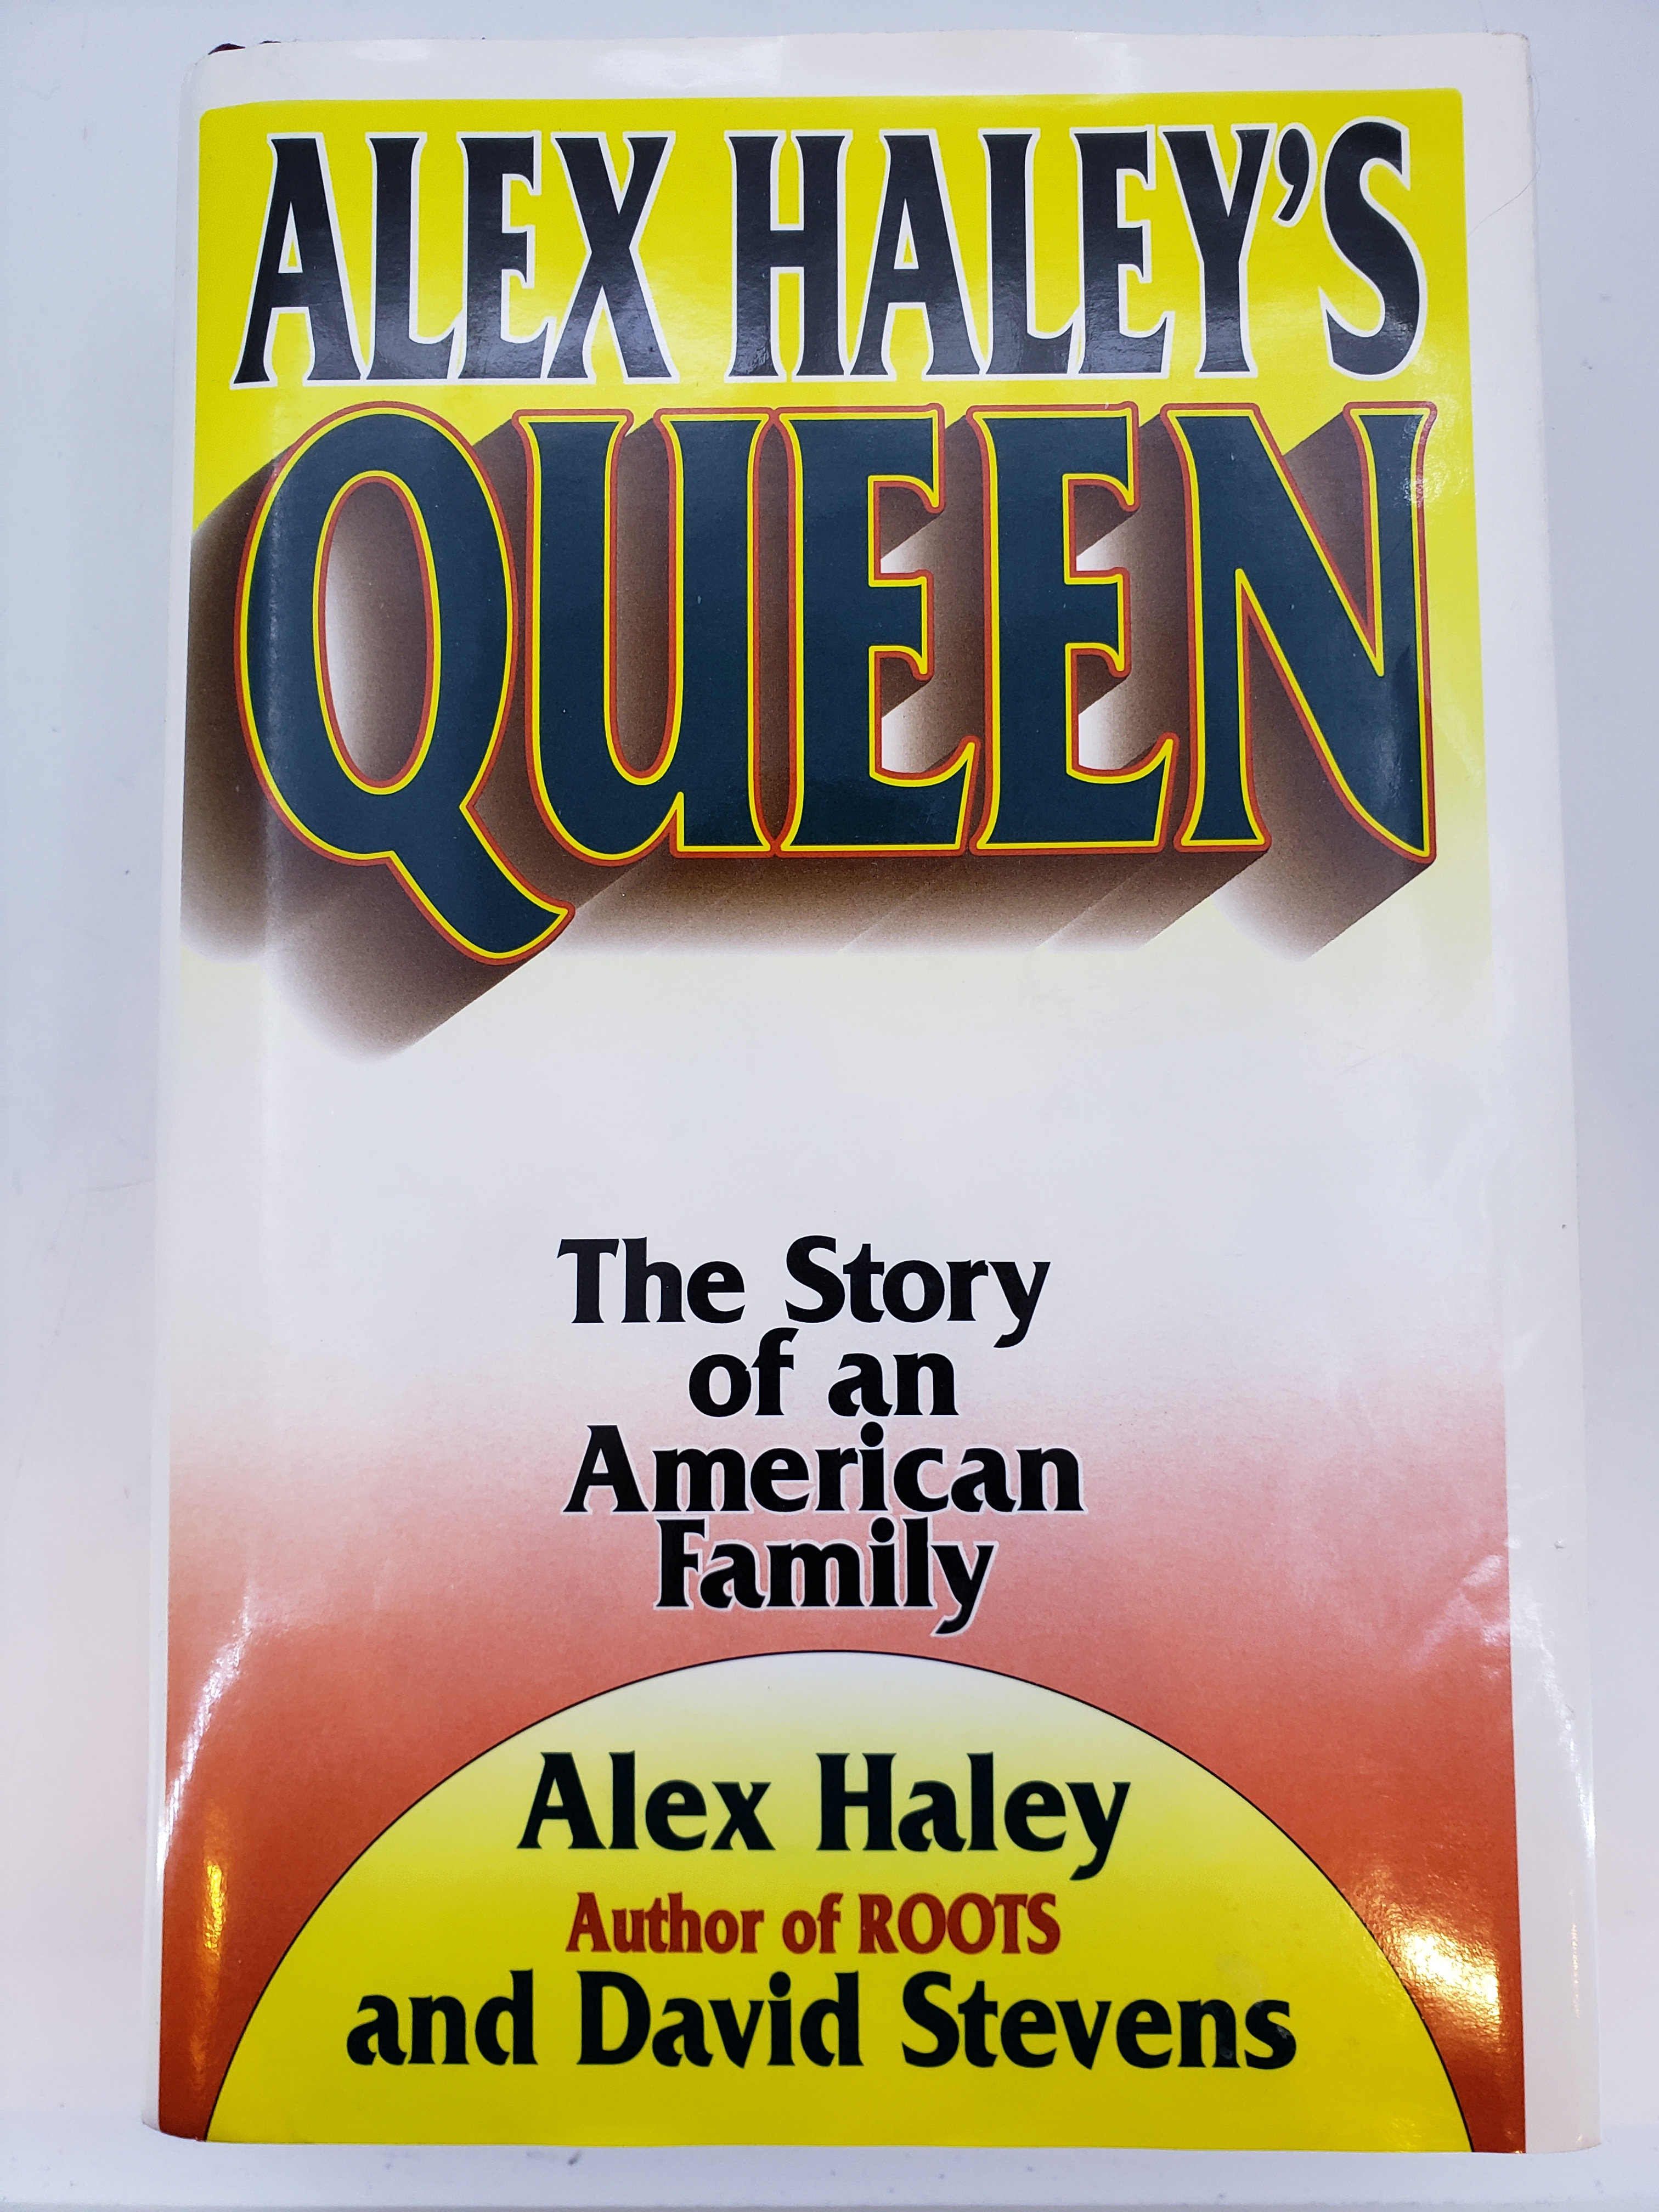 Queen, The Story of an American Family by Alex Haley